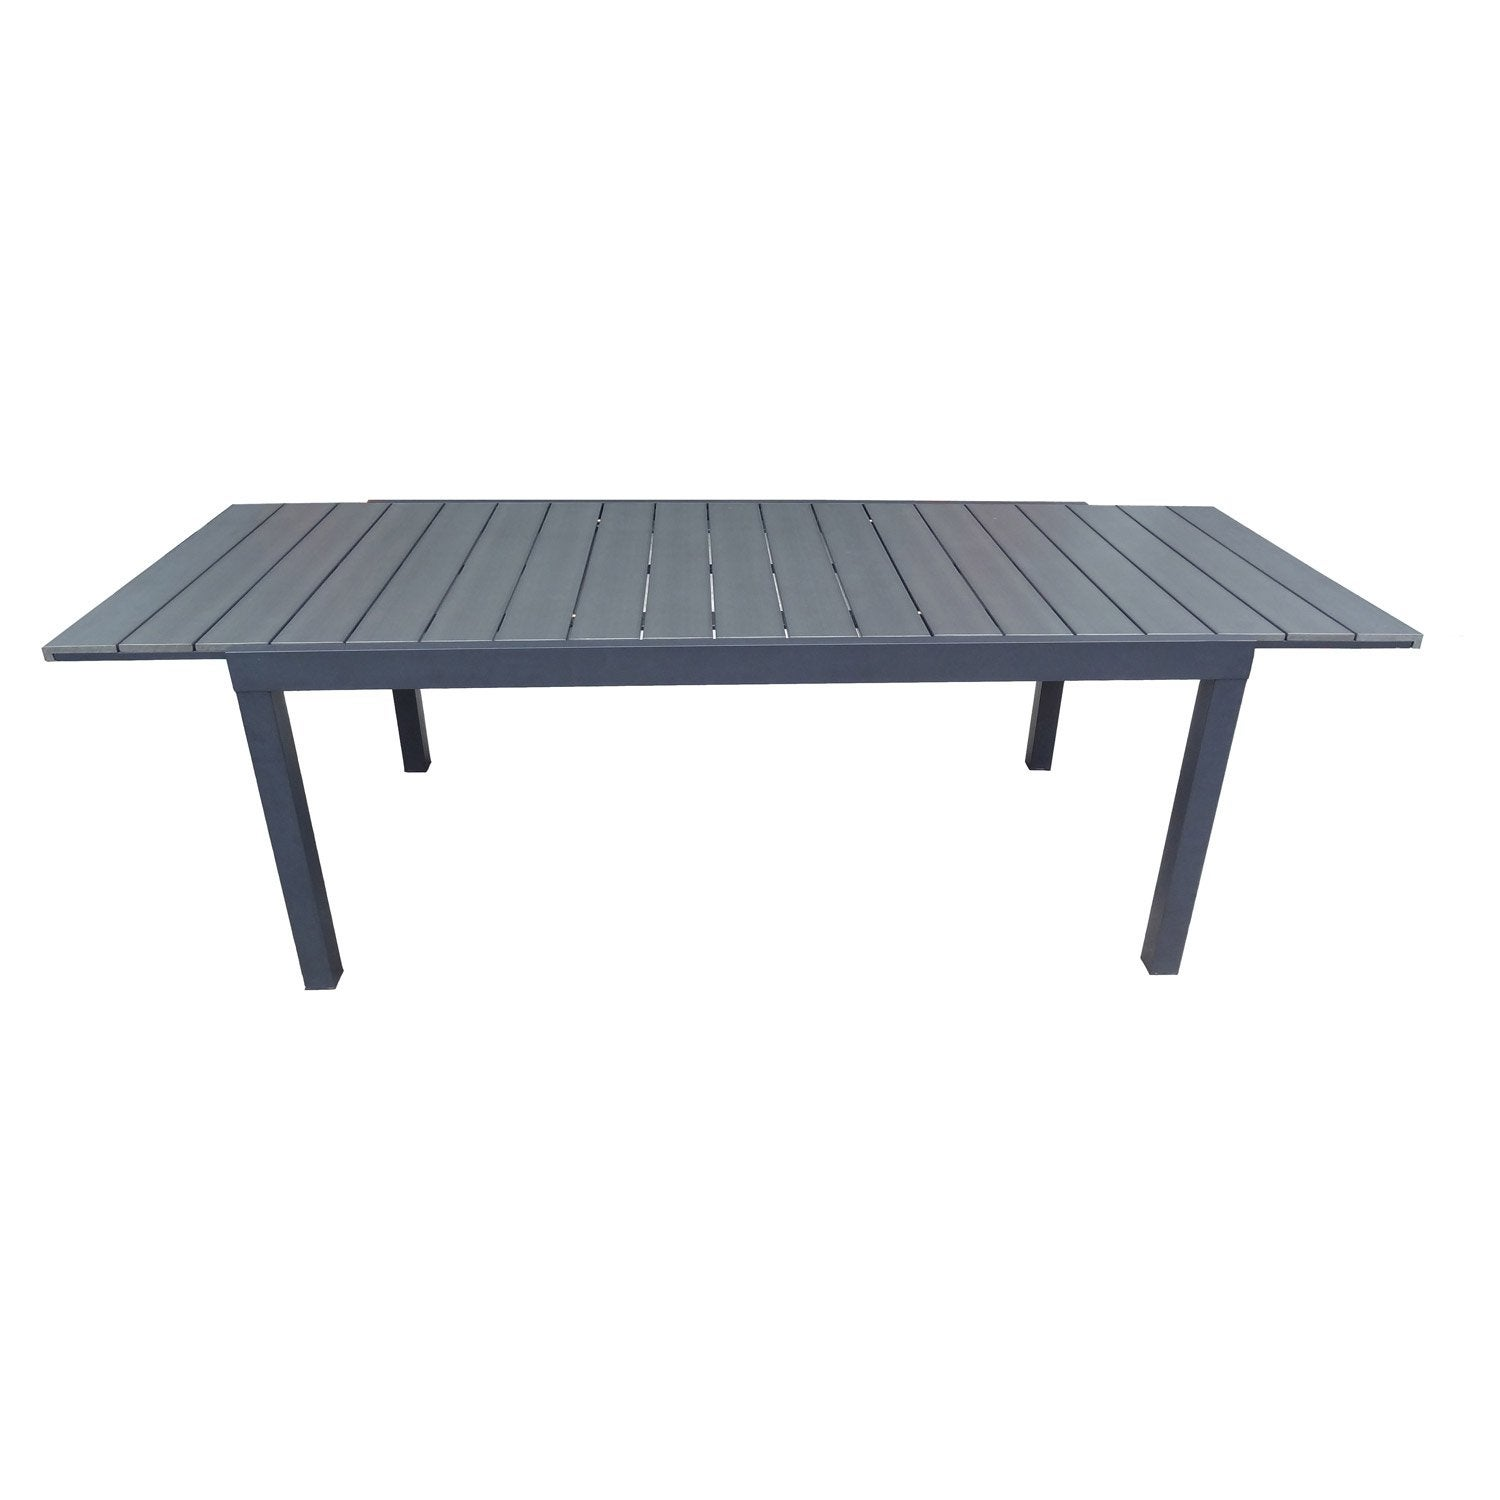 Table de jardin naterial pratt rectangulaire gris leroy for Bache de table de jardin